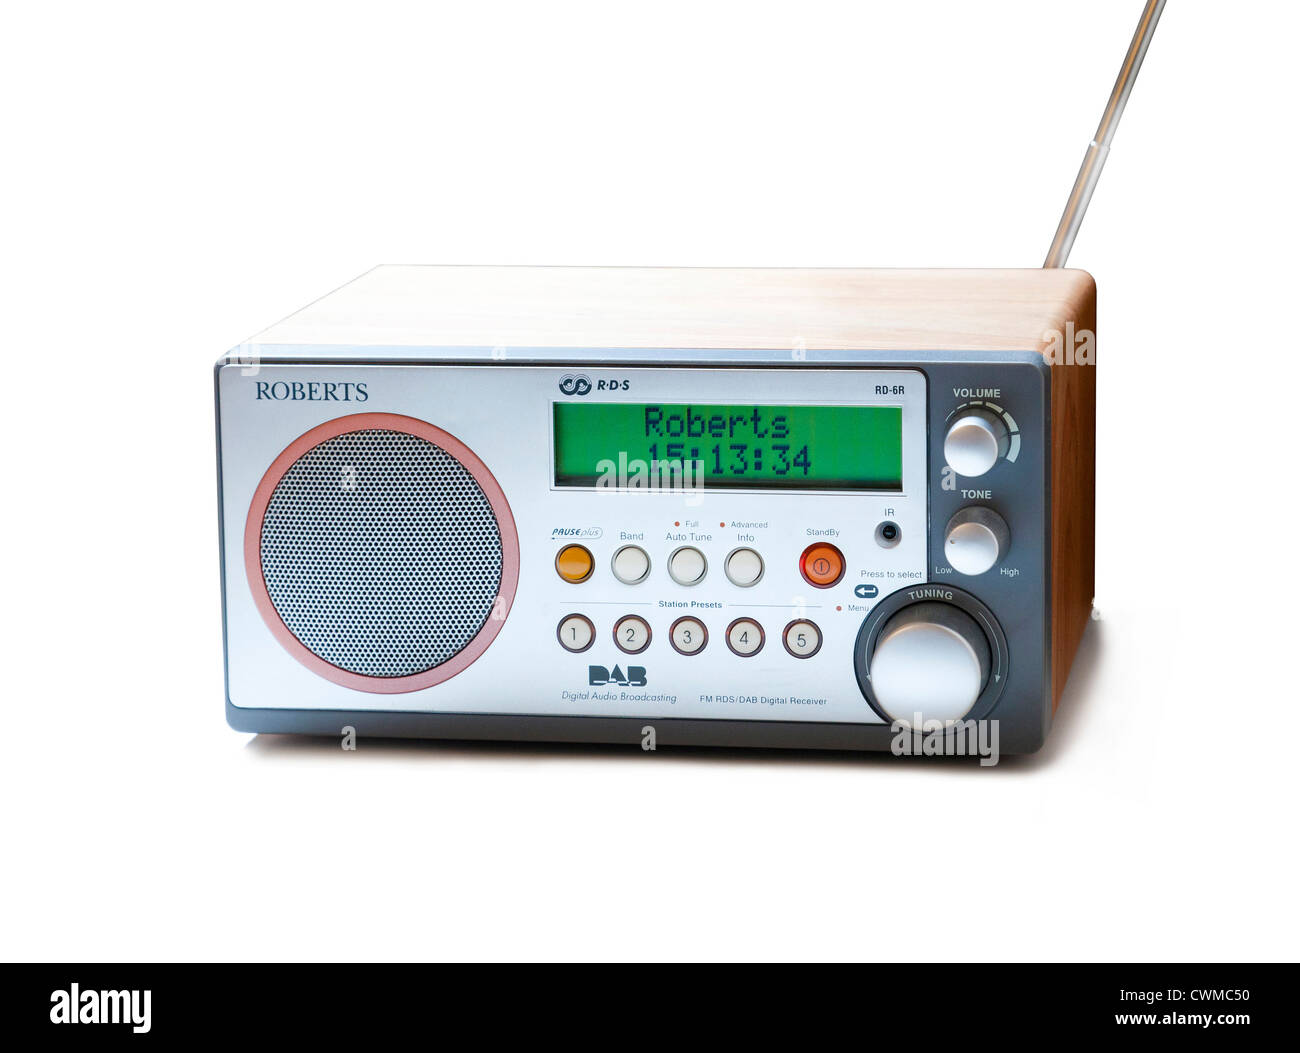 radio receiver stock photos radio receiver stock images. Black Bedroom Furniture Sets. Home Design Ideas